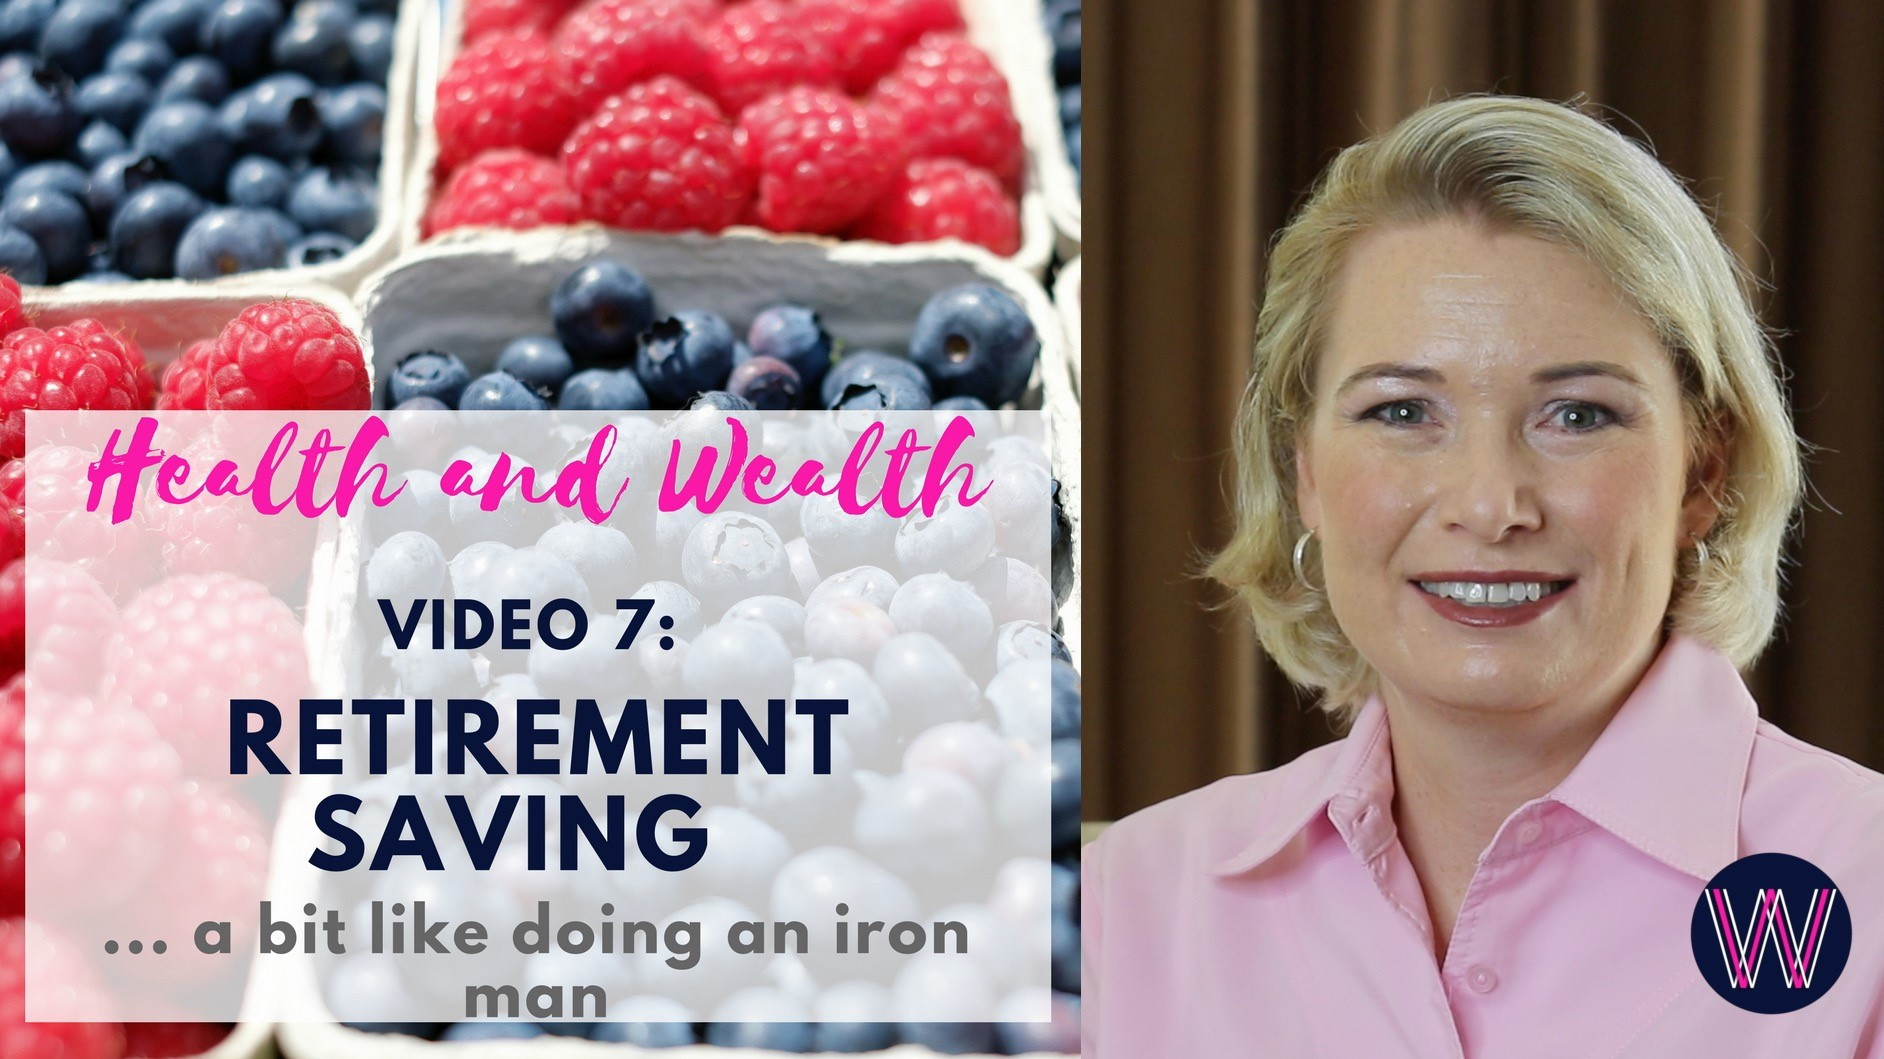 Video 8 – How to take your retirement investing from a 10km run to an ultra iron man